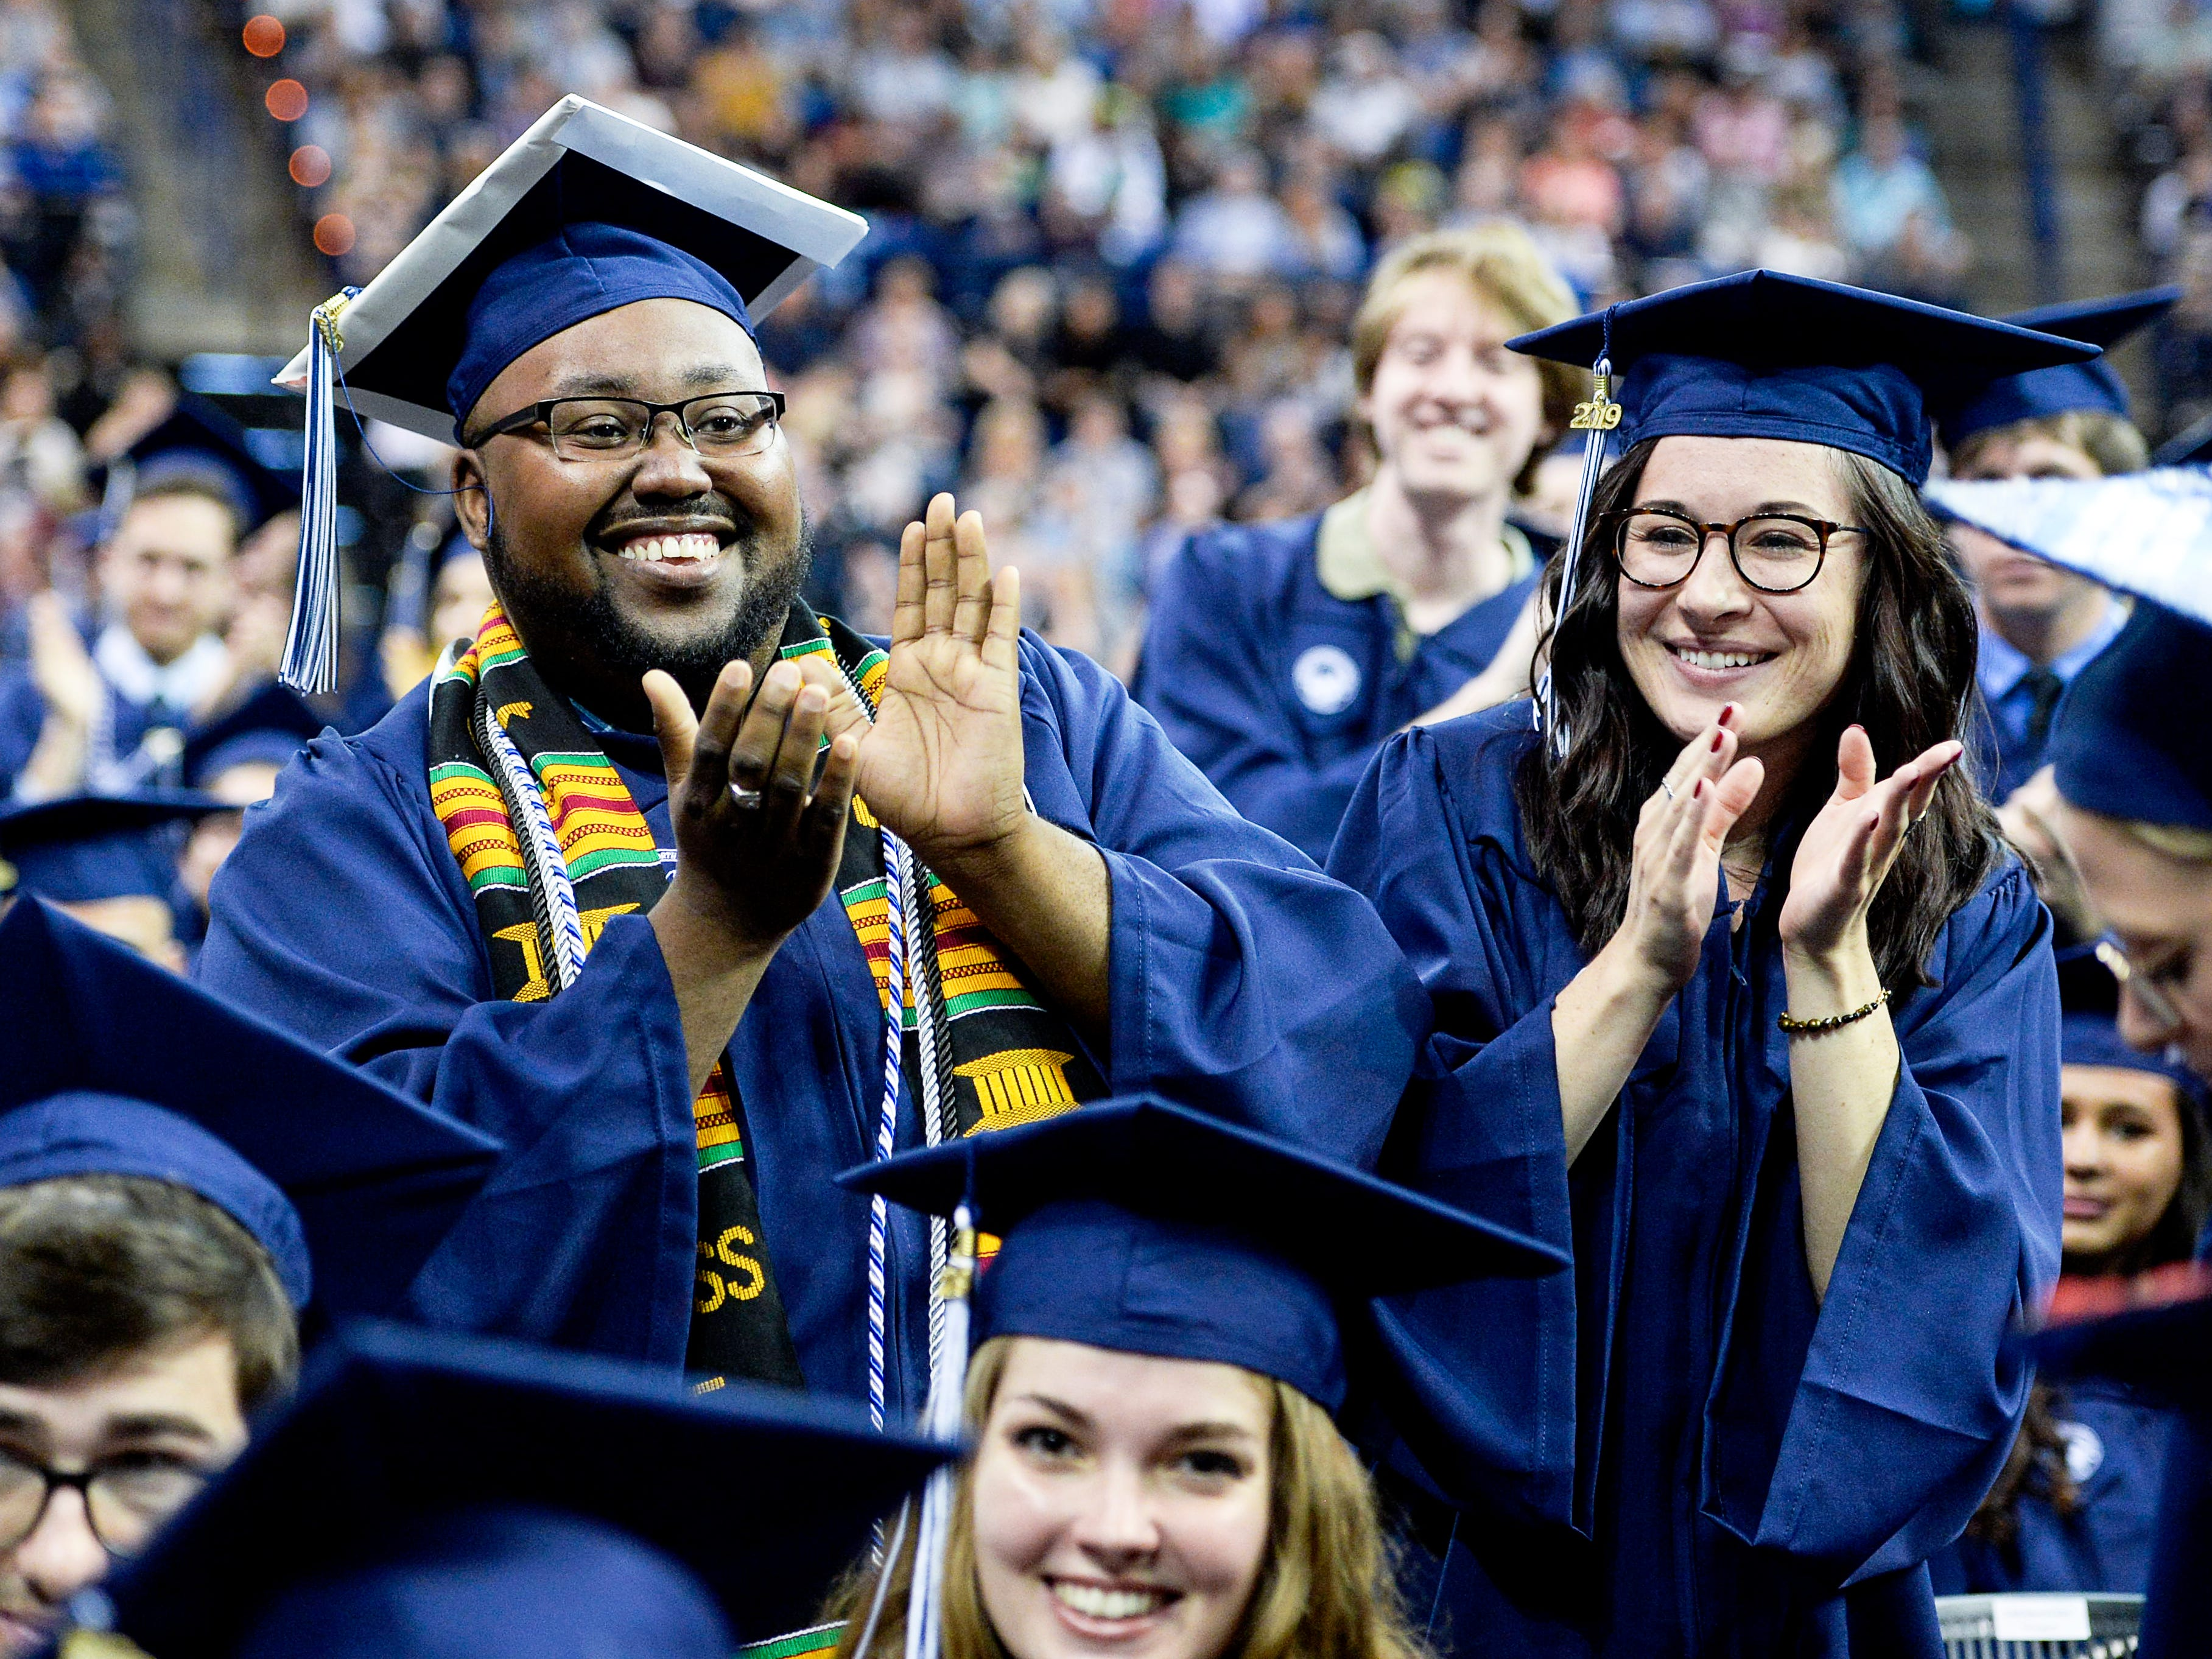 UNC Asheville graduates clap as the UNC Board of Governors Award for Excellence in Teaching is announced during commencement May 11, 2019.